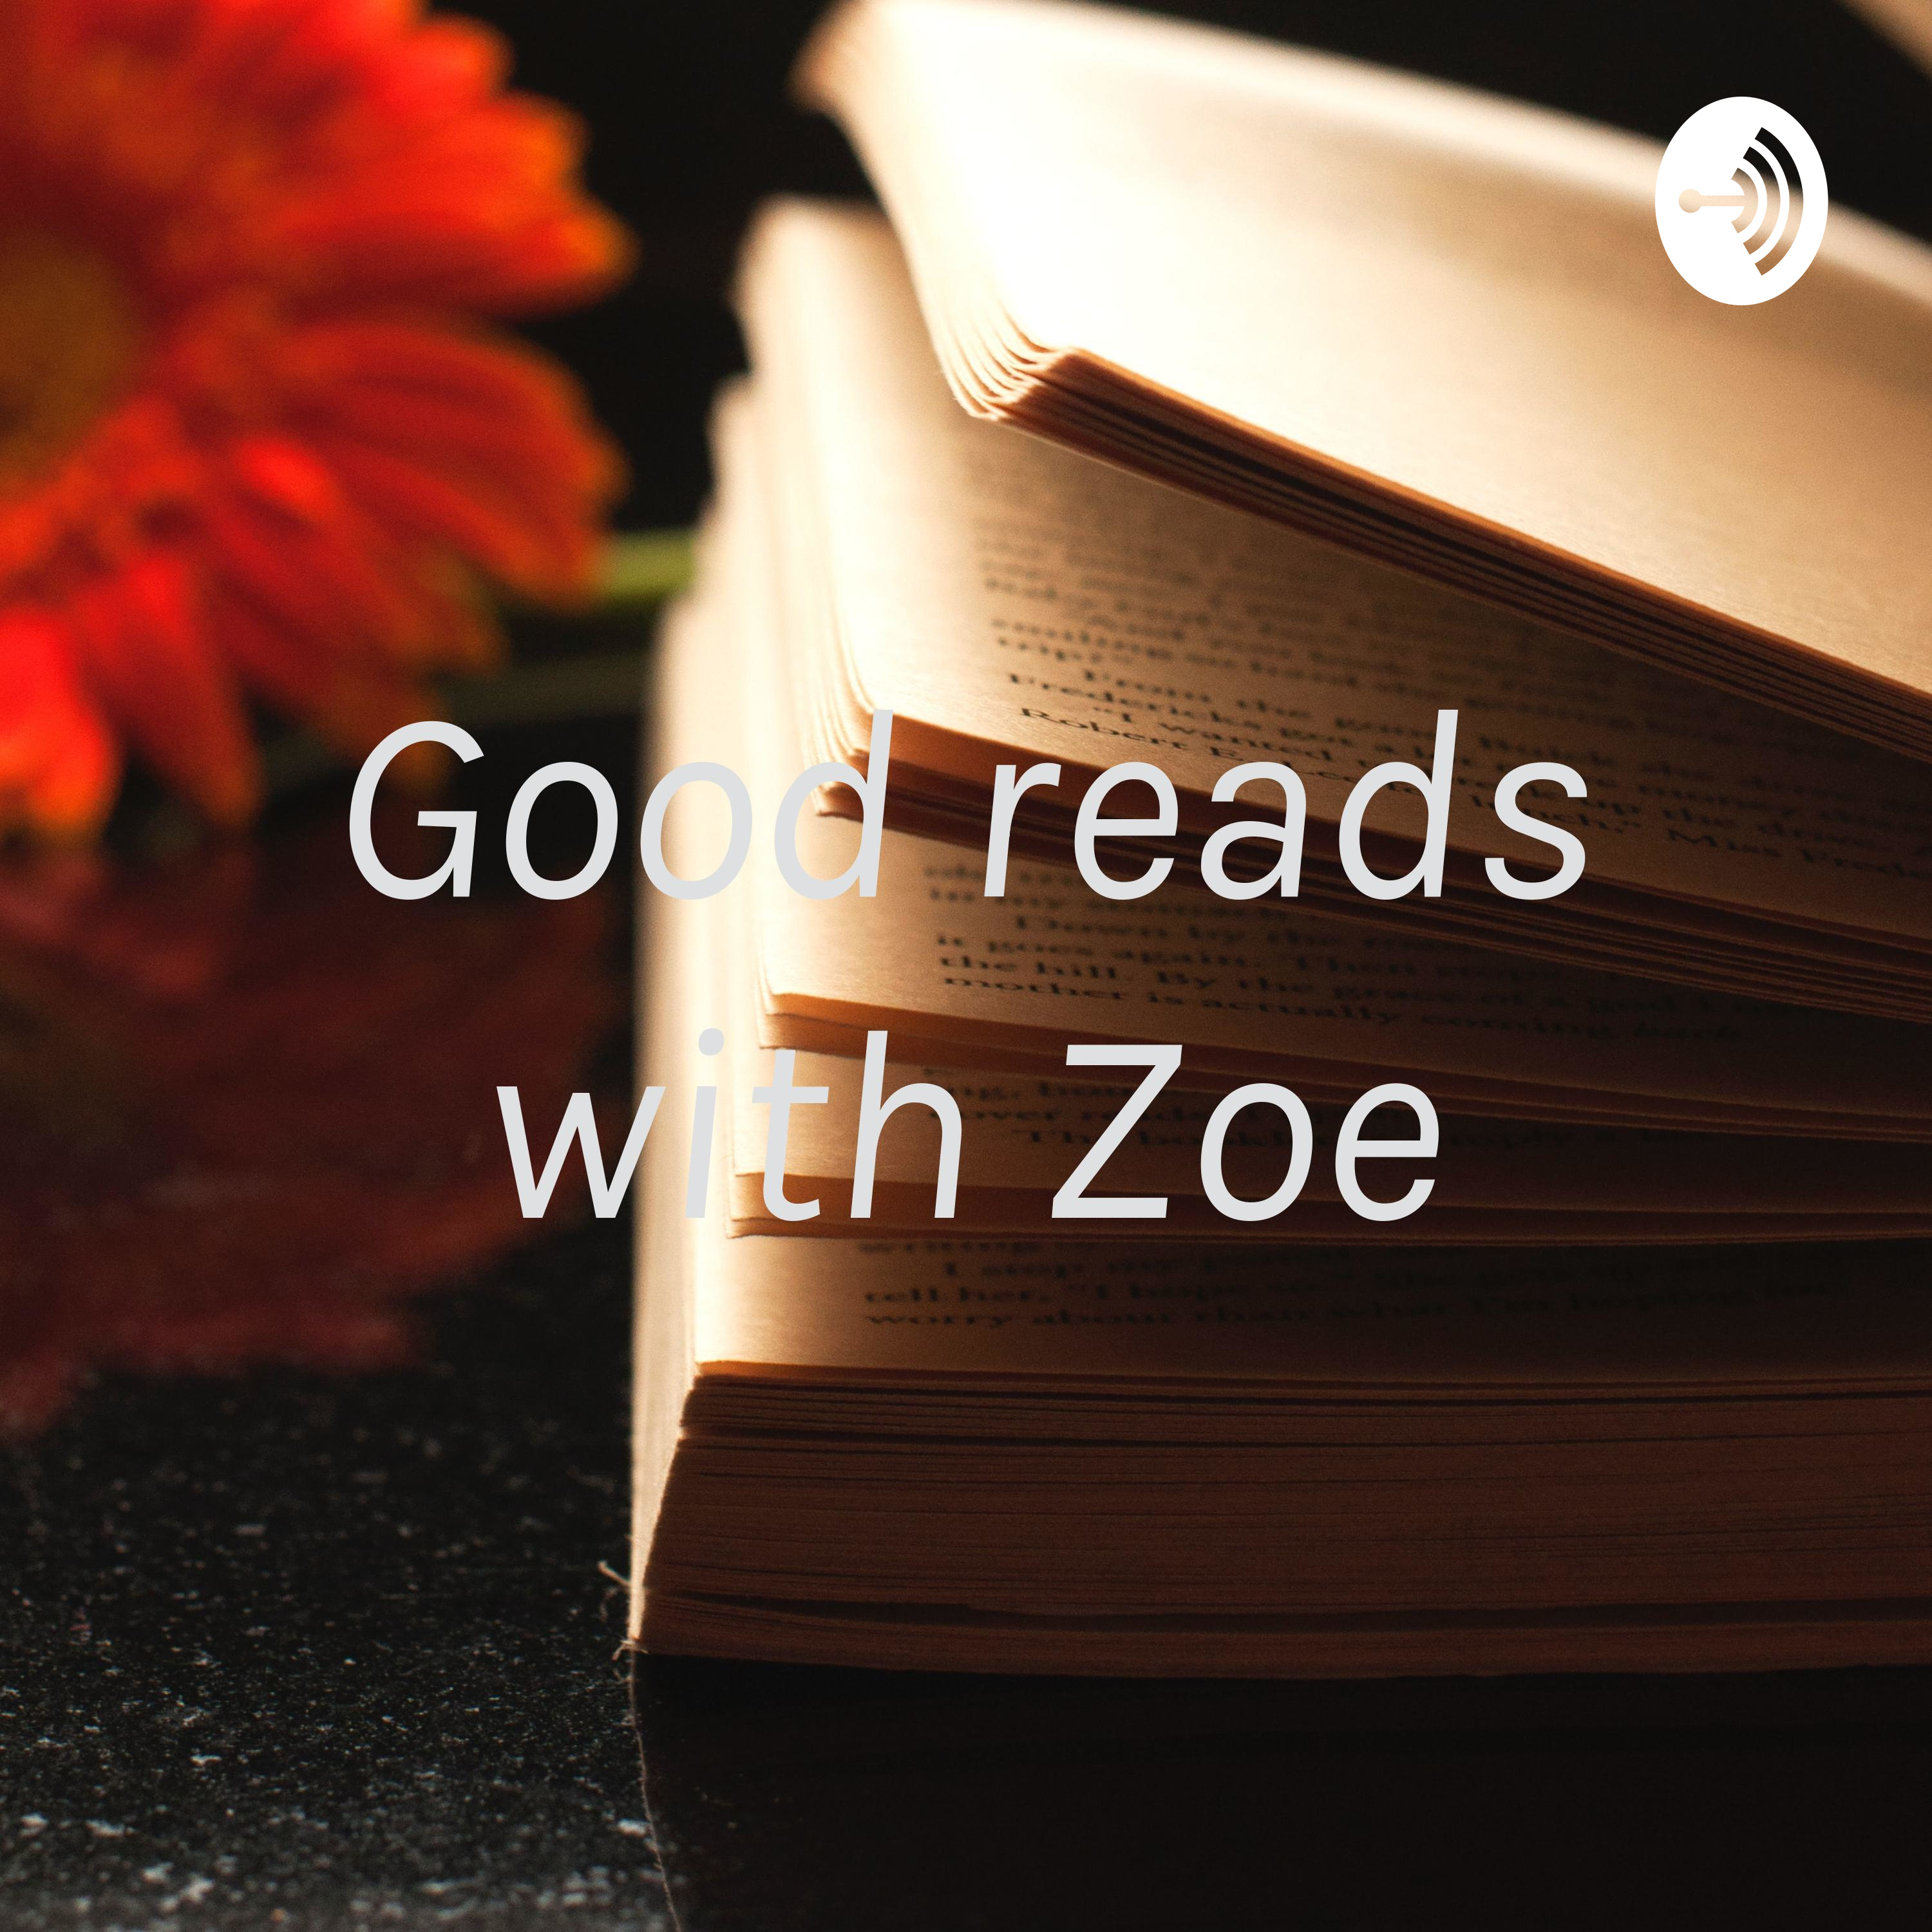 Good reads with Zoe: The help